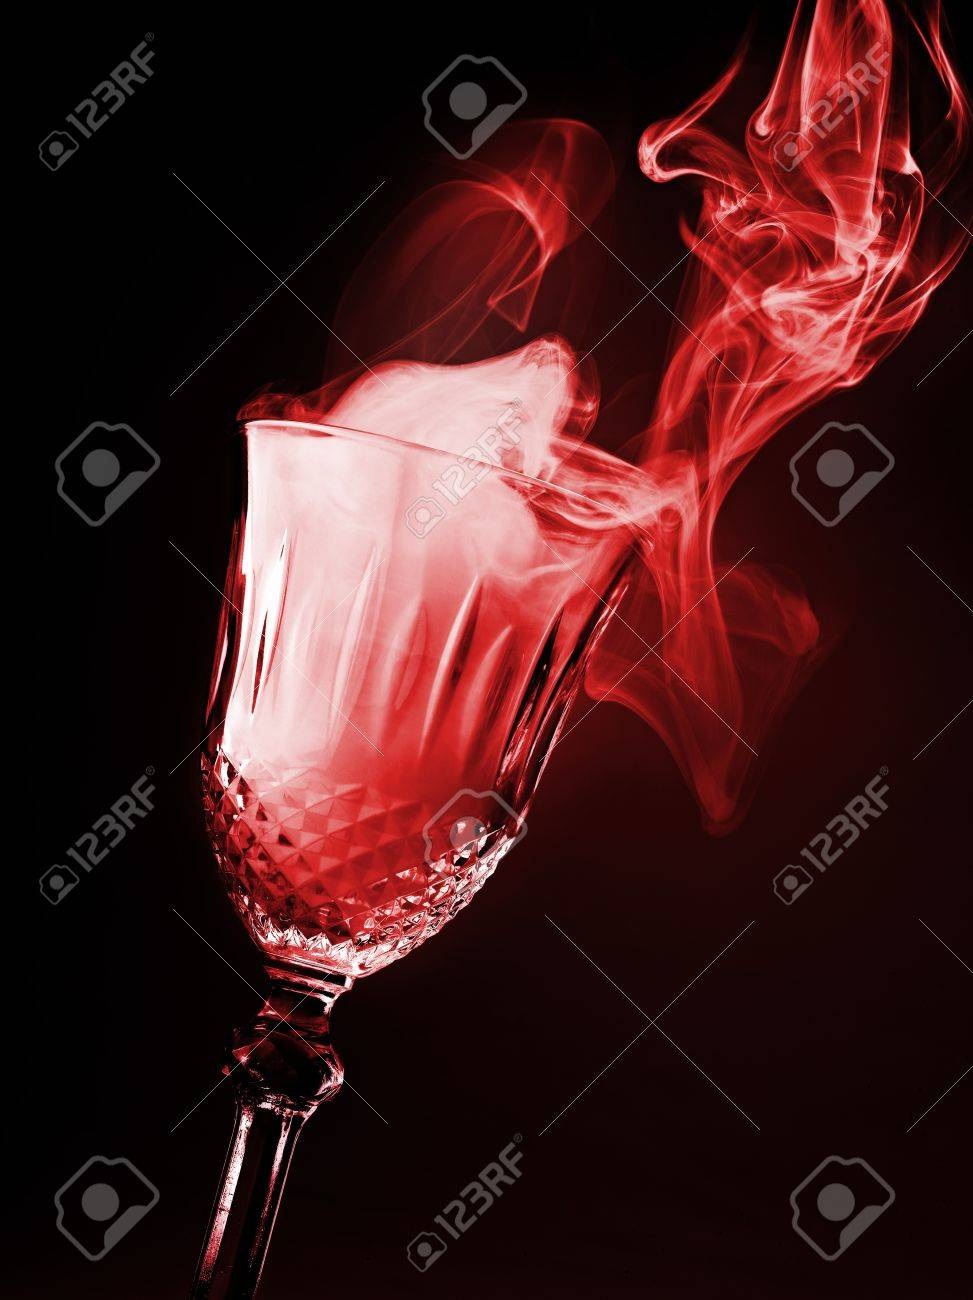 glass of magical smoke on black background Stock Photo - 12413805